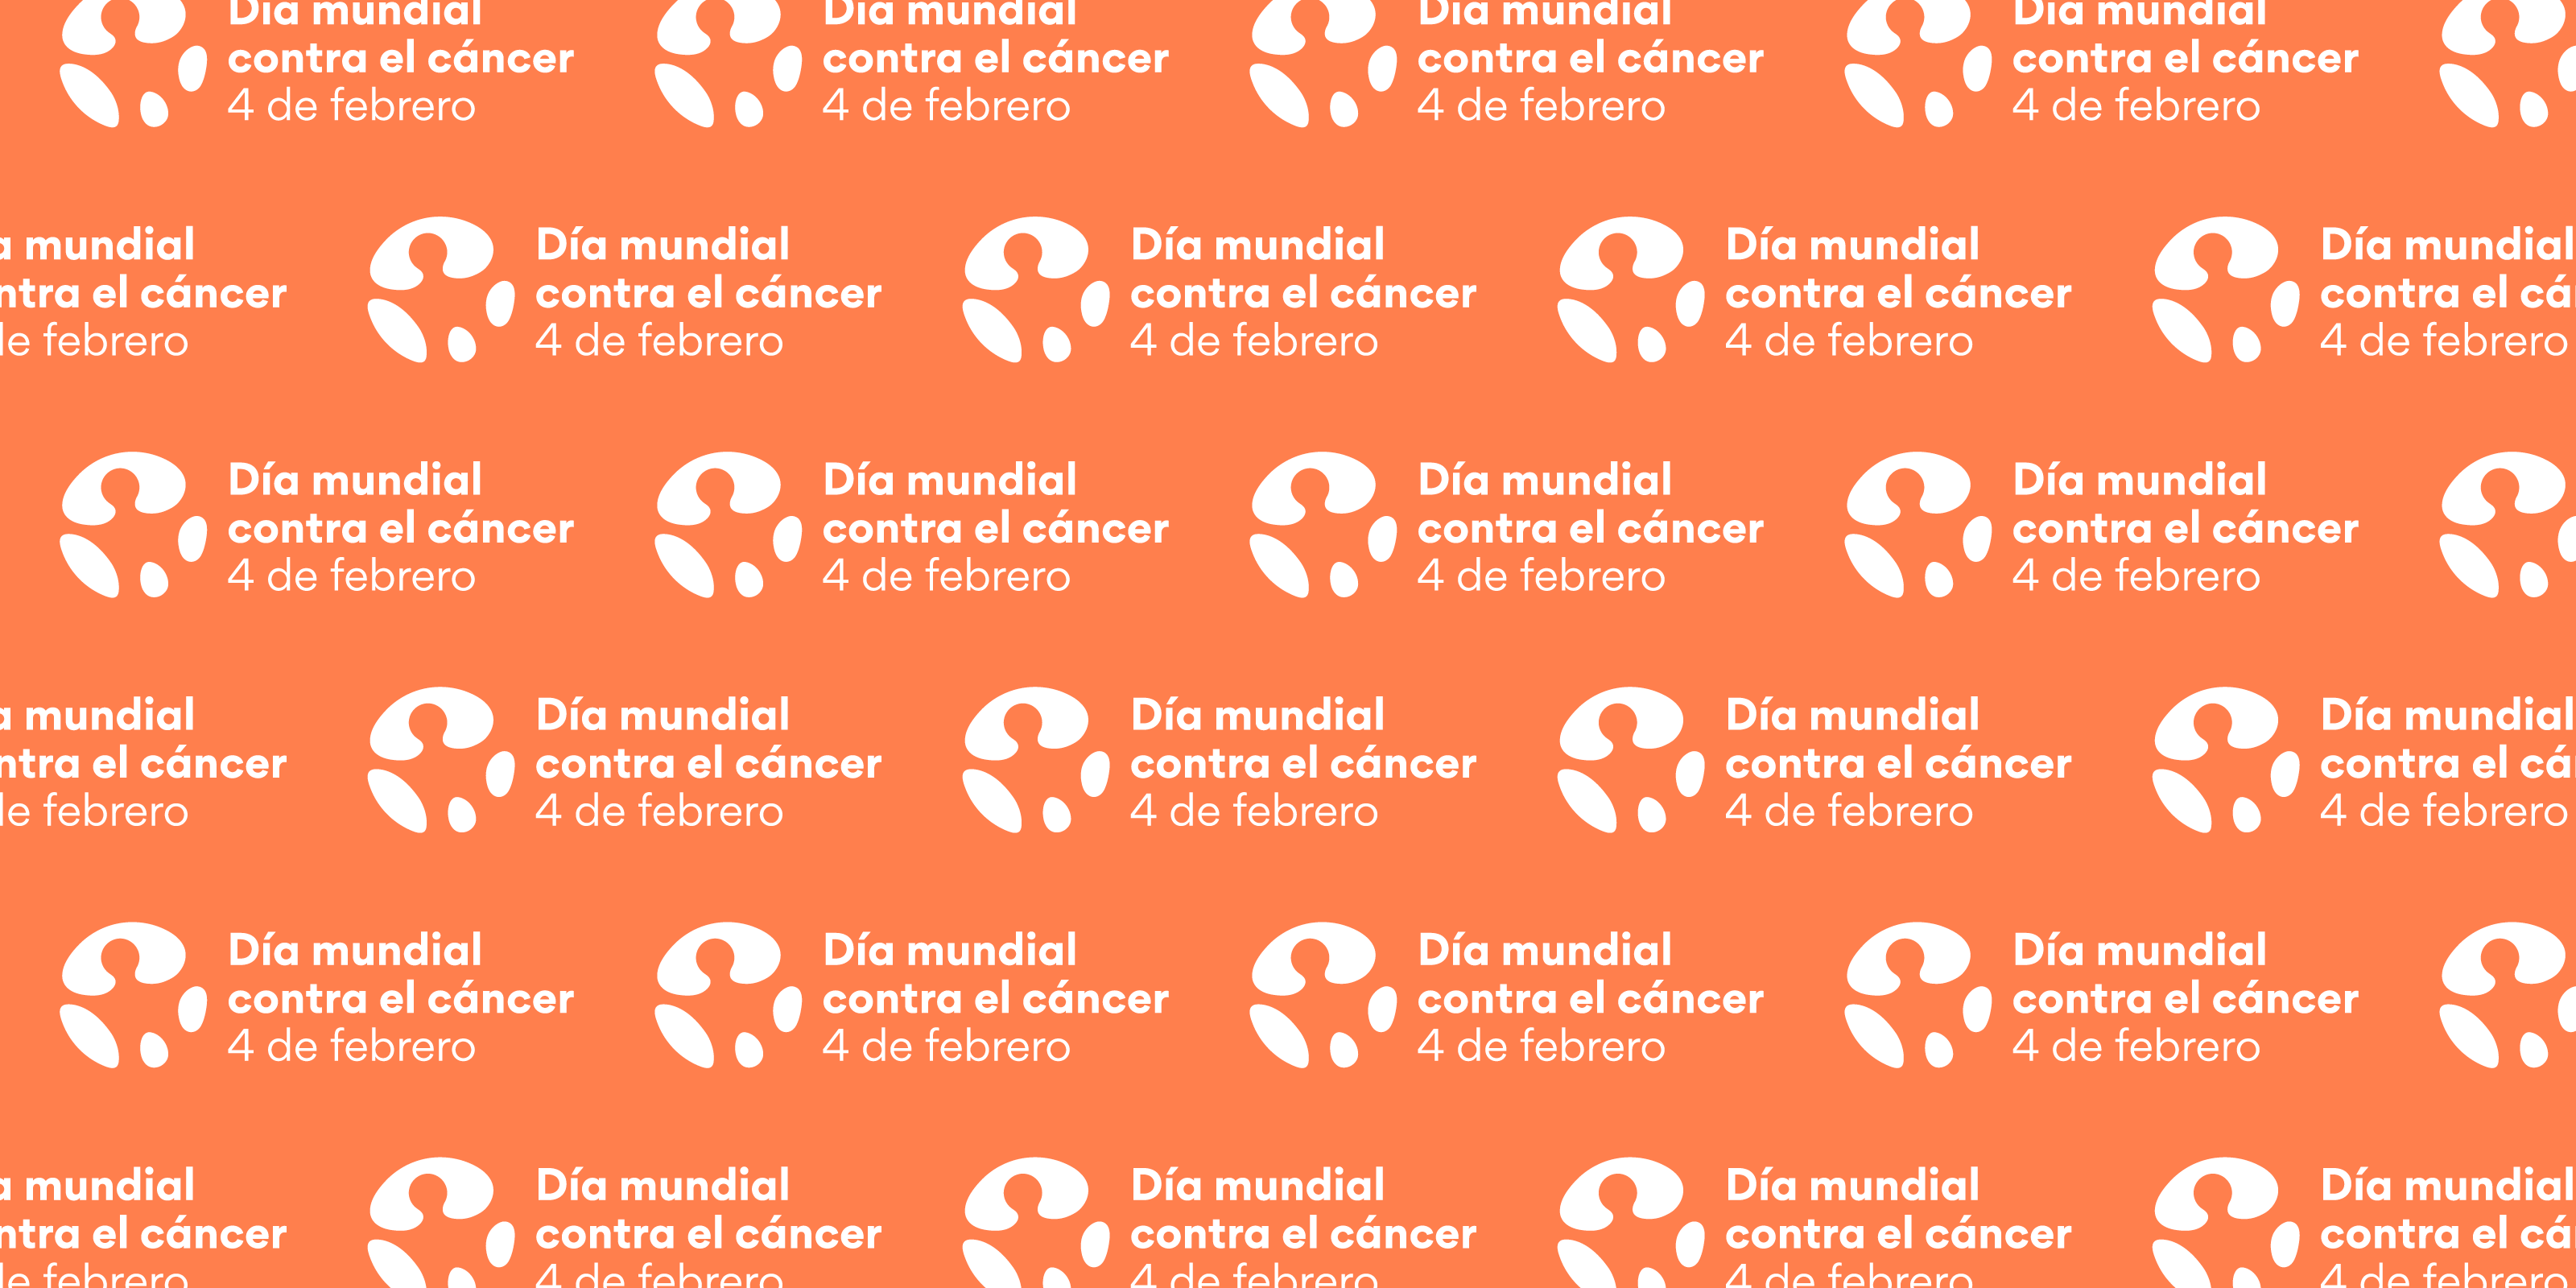 World Cancer Day 2020 LinkedIn Cover Image Spanish